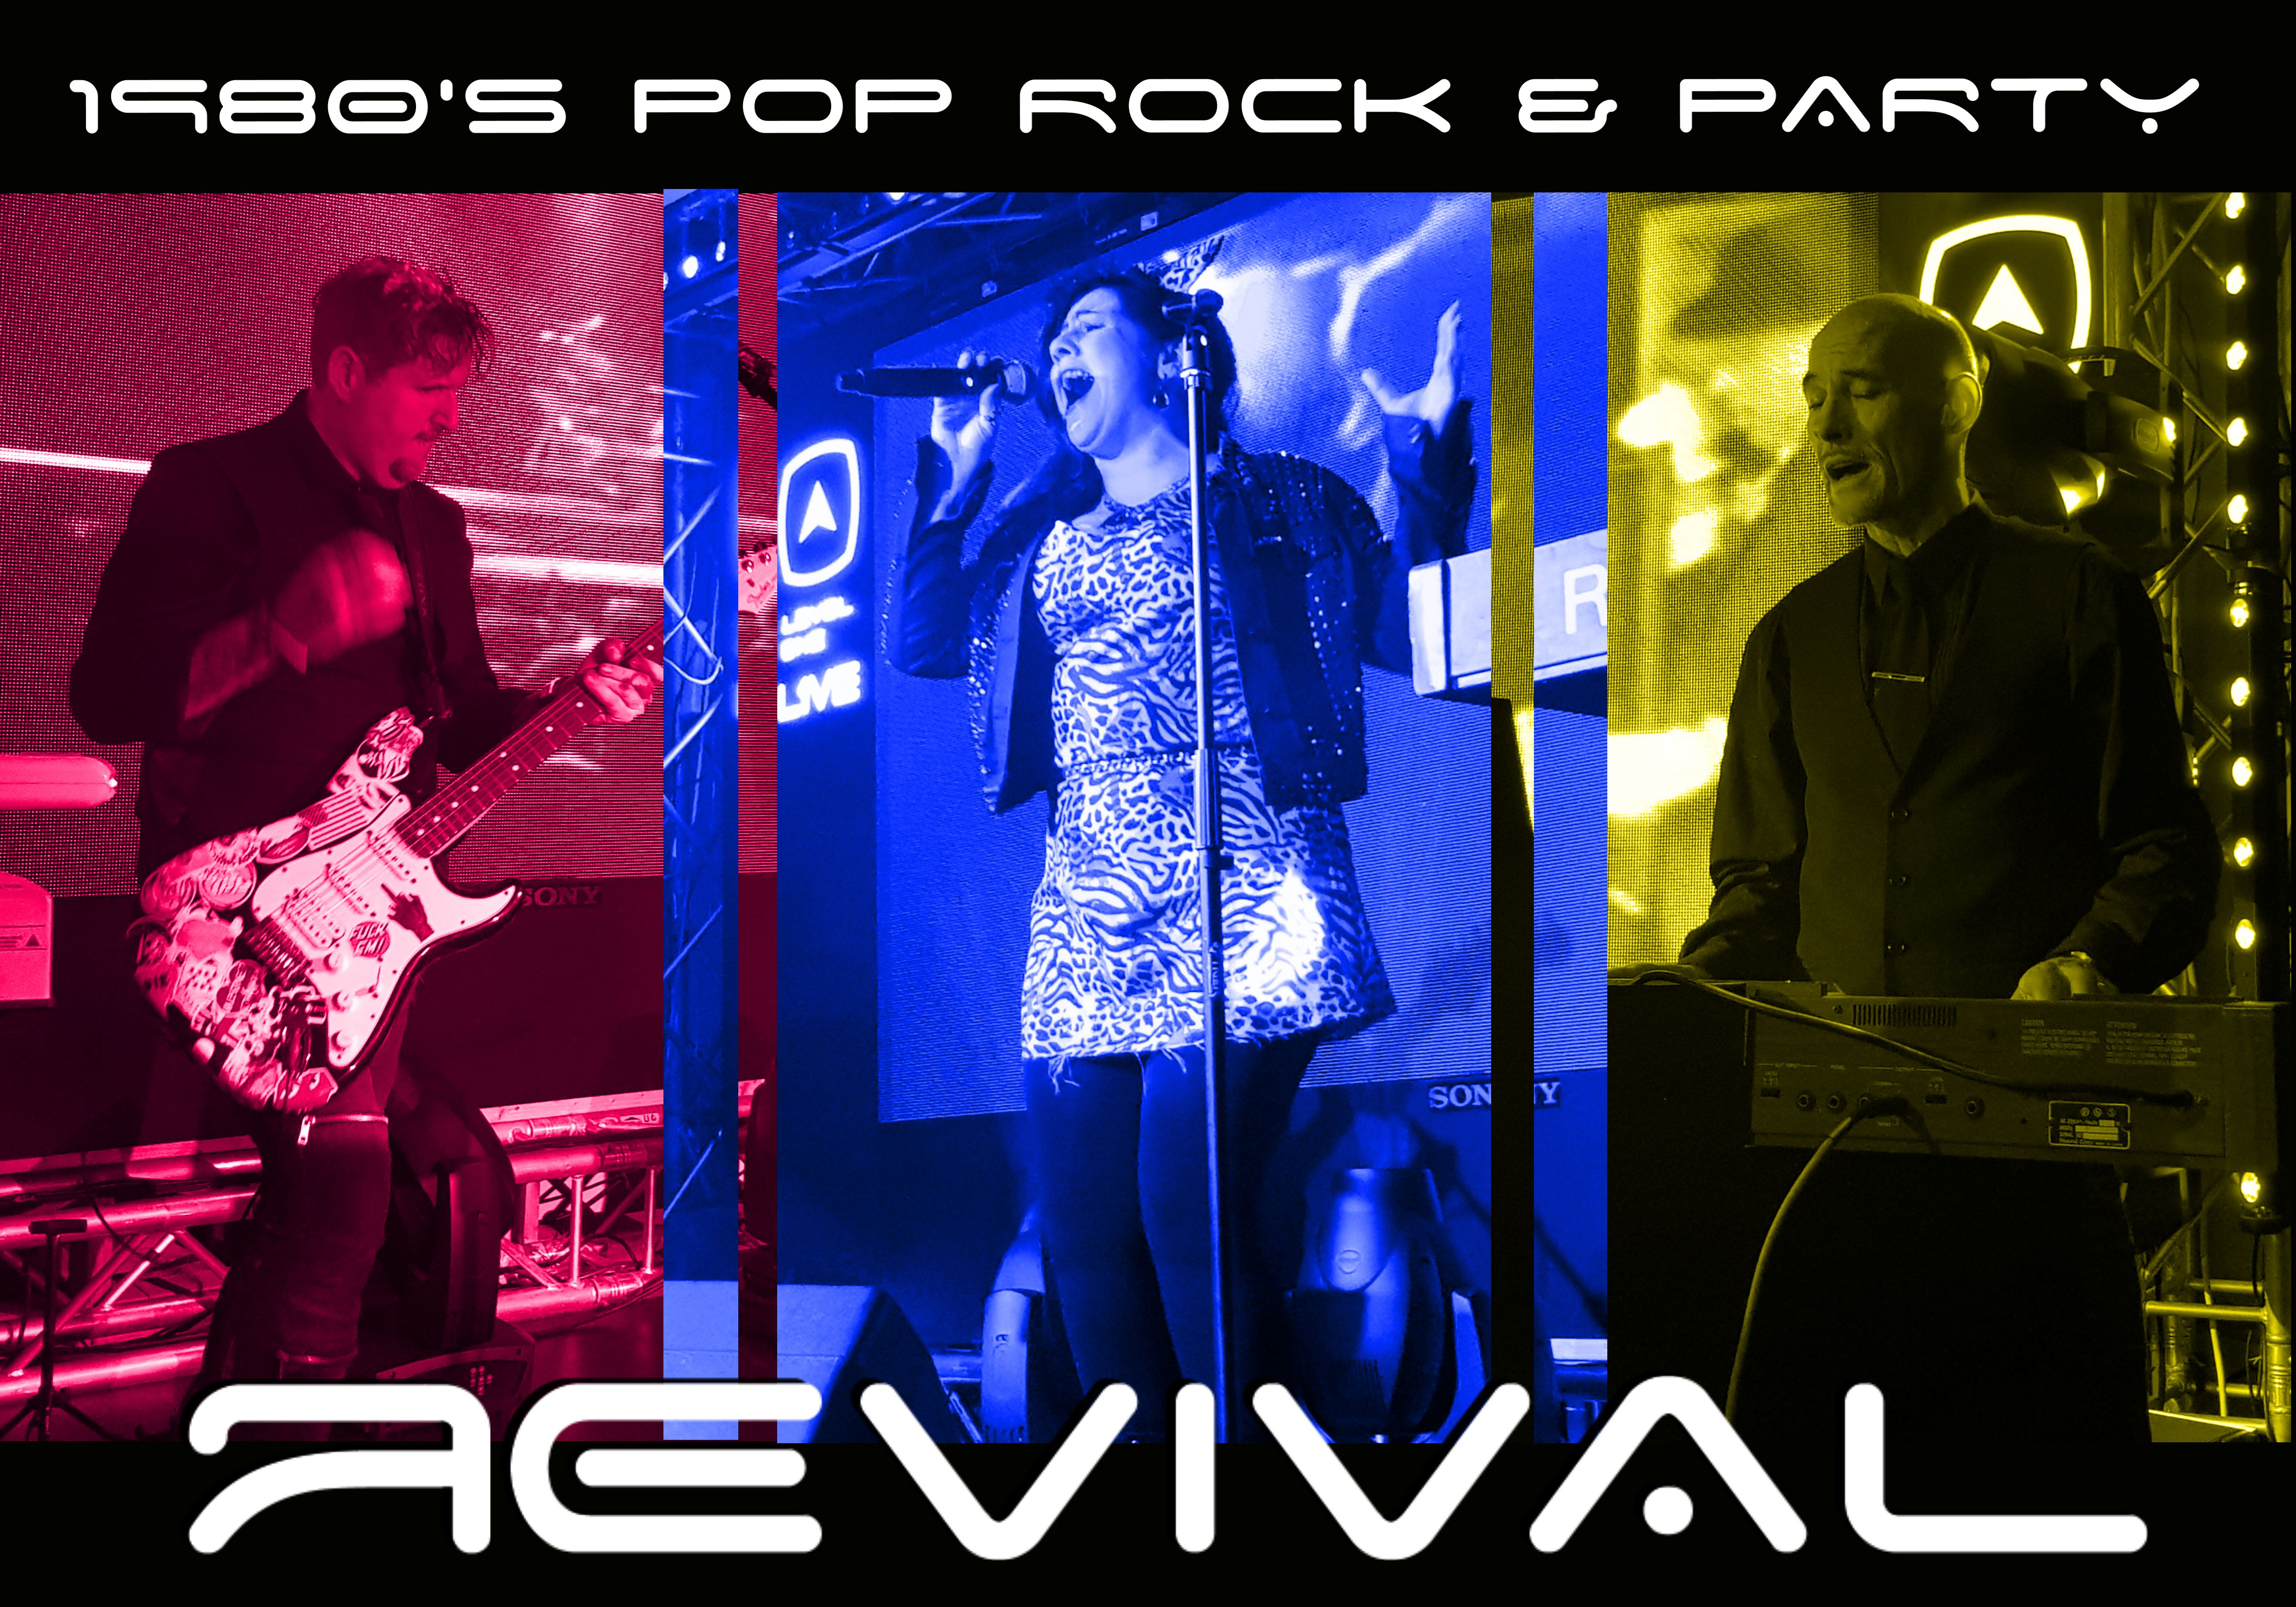 Revival - 1980's Tribute Band